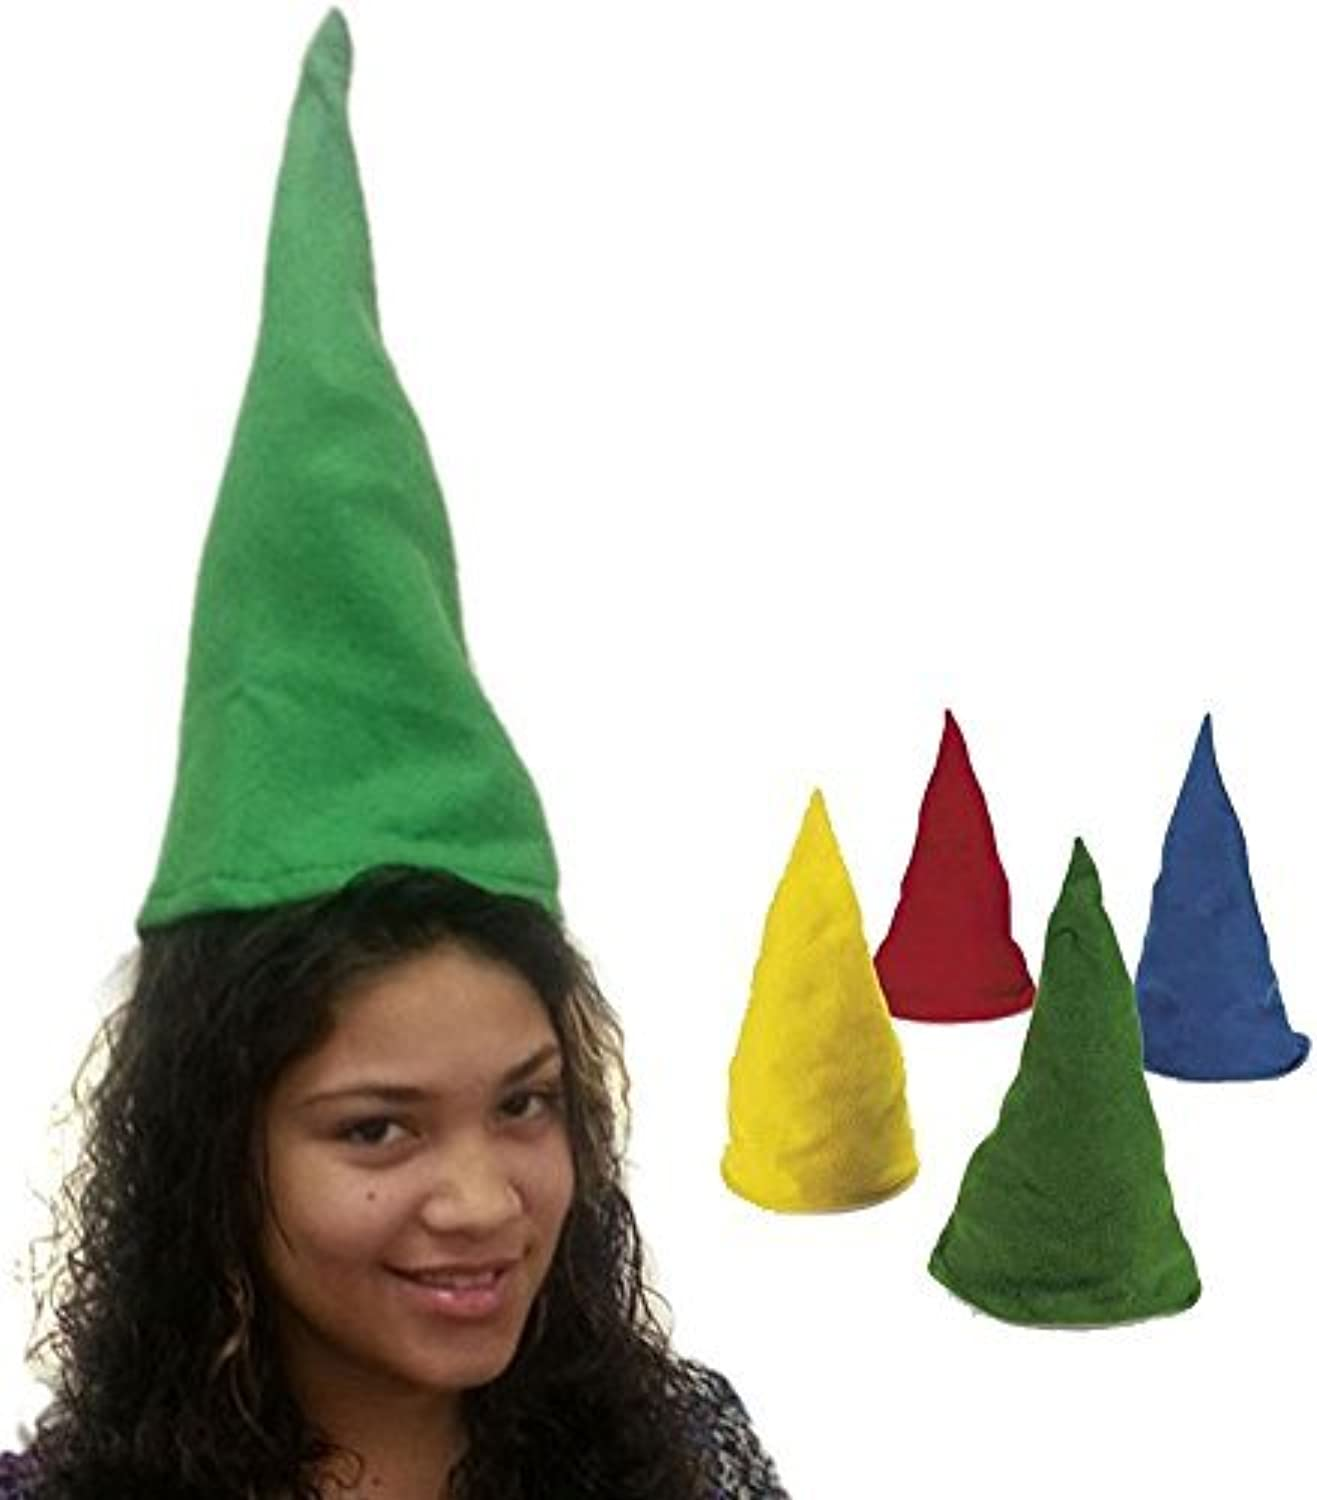 a precios asequibles Felt Gnome Hats - Set Of Dozen Felt Gnome Hats Hats Hats In Assorted Colors by Funny Party Hats  tienda de venta